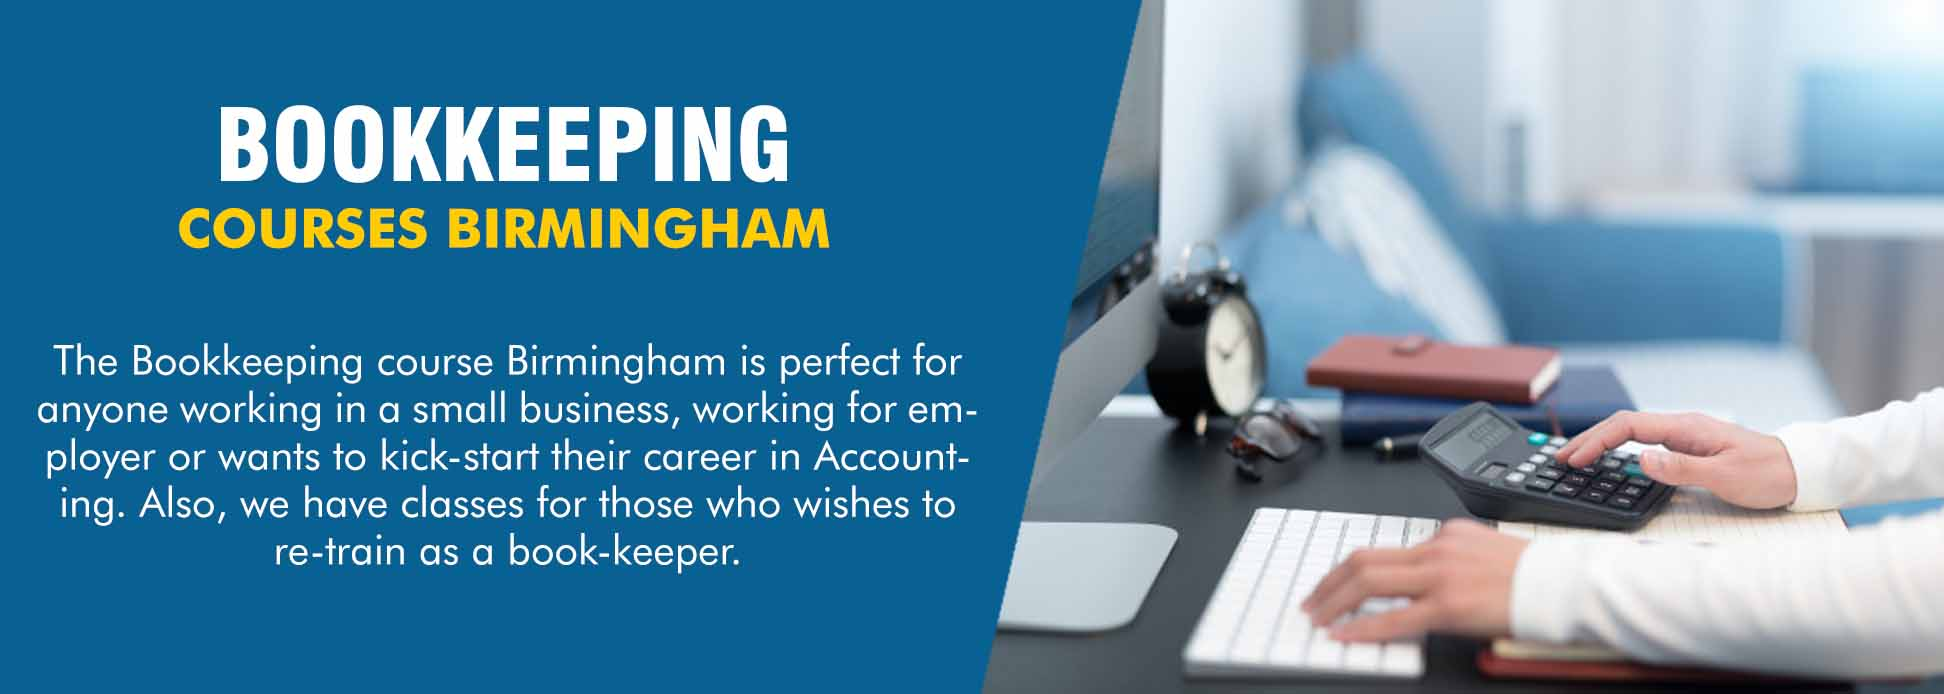 Bookkeeping-courses-in-birmingham